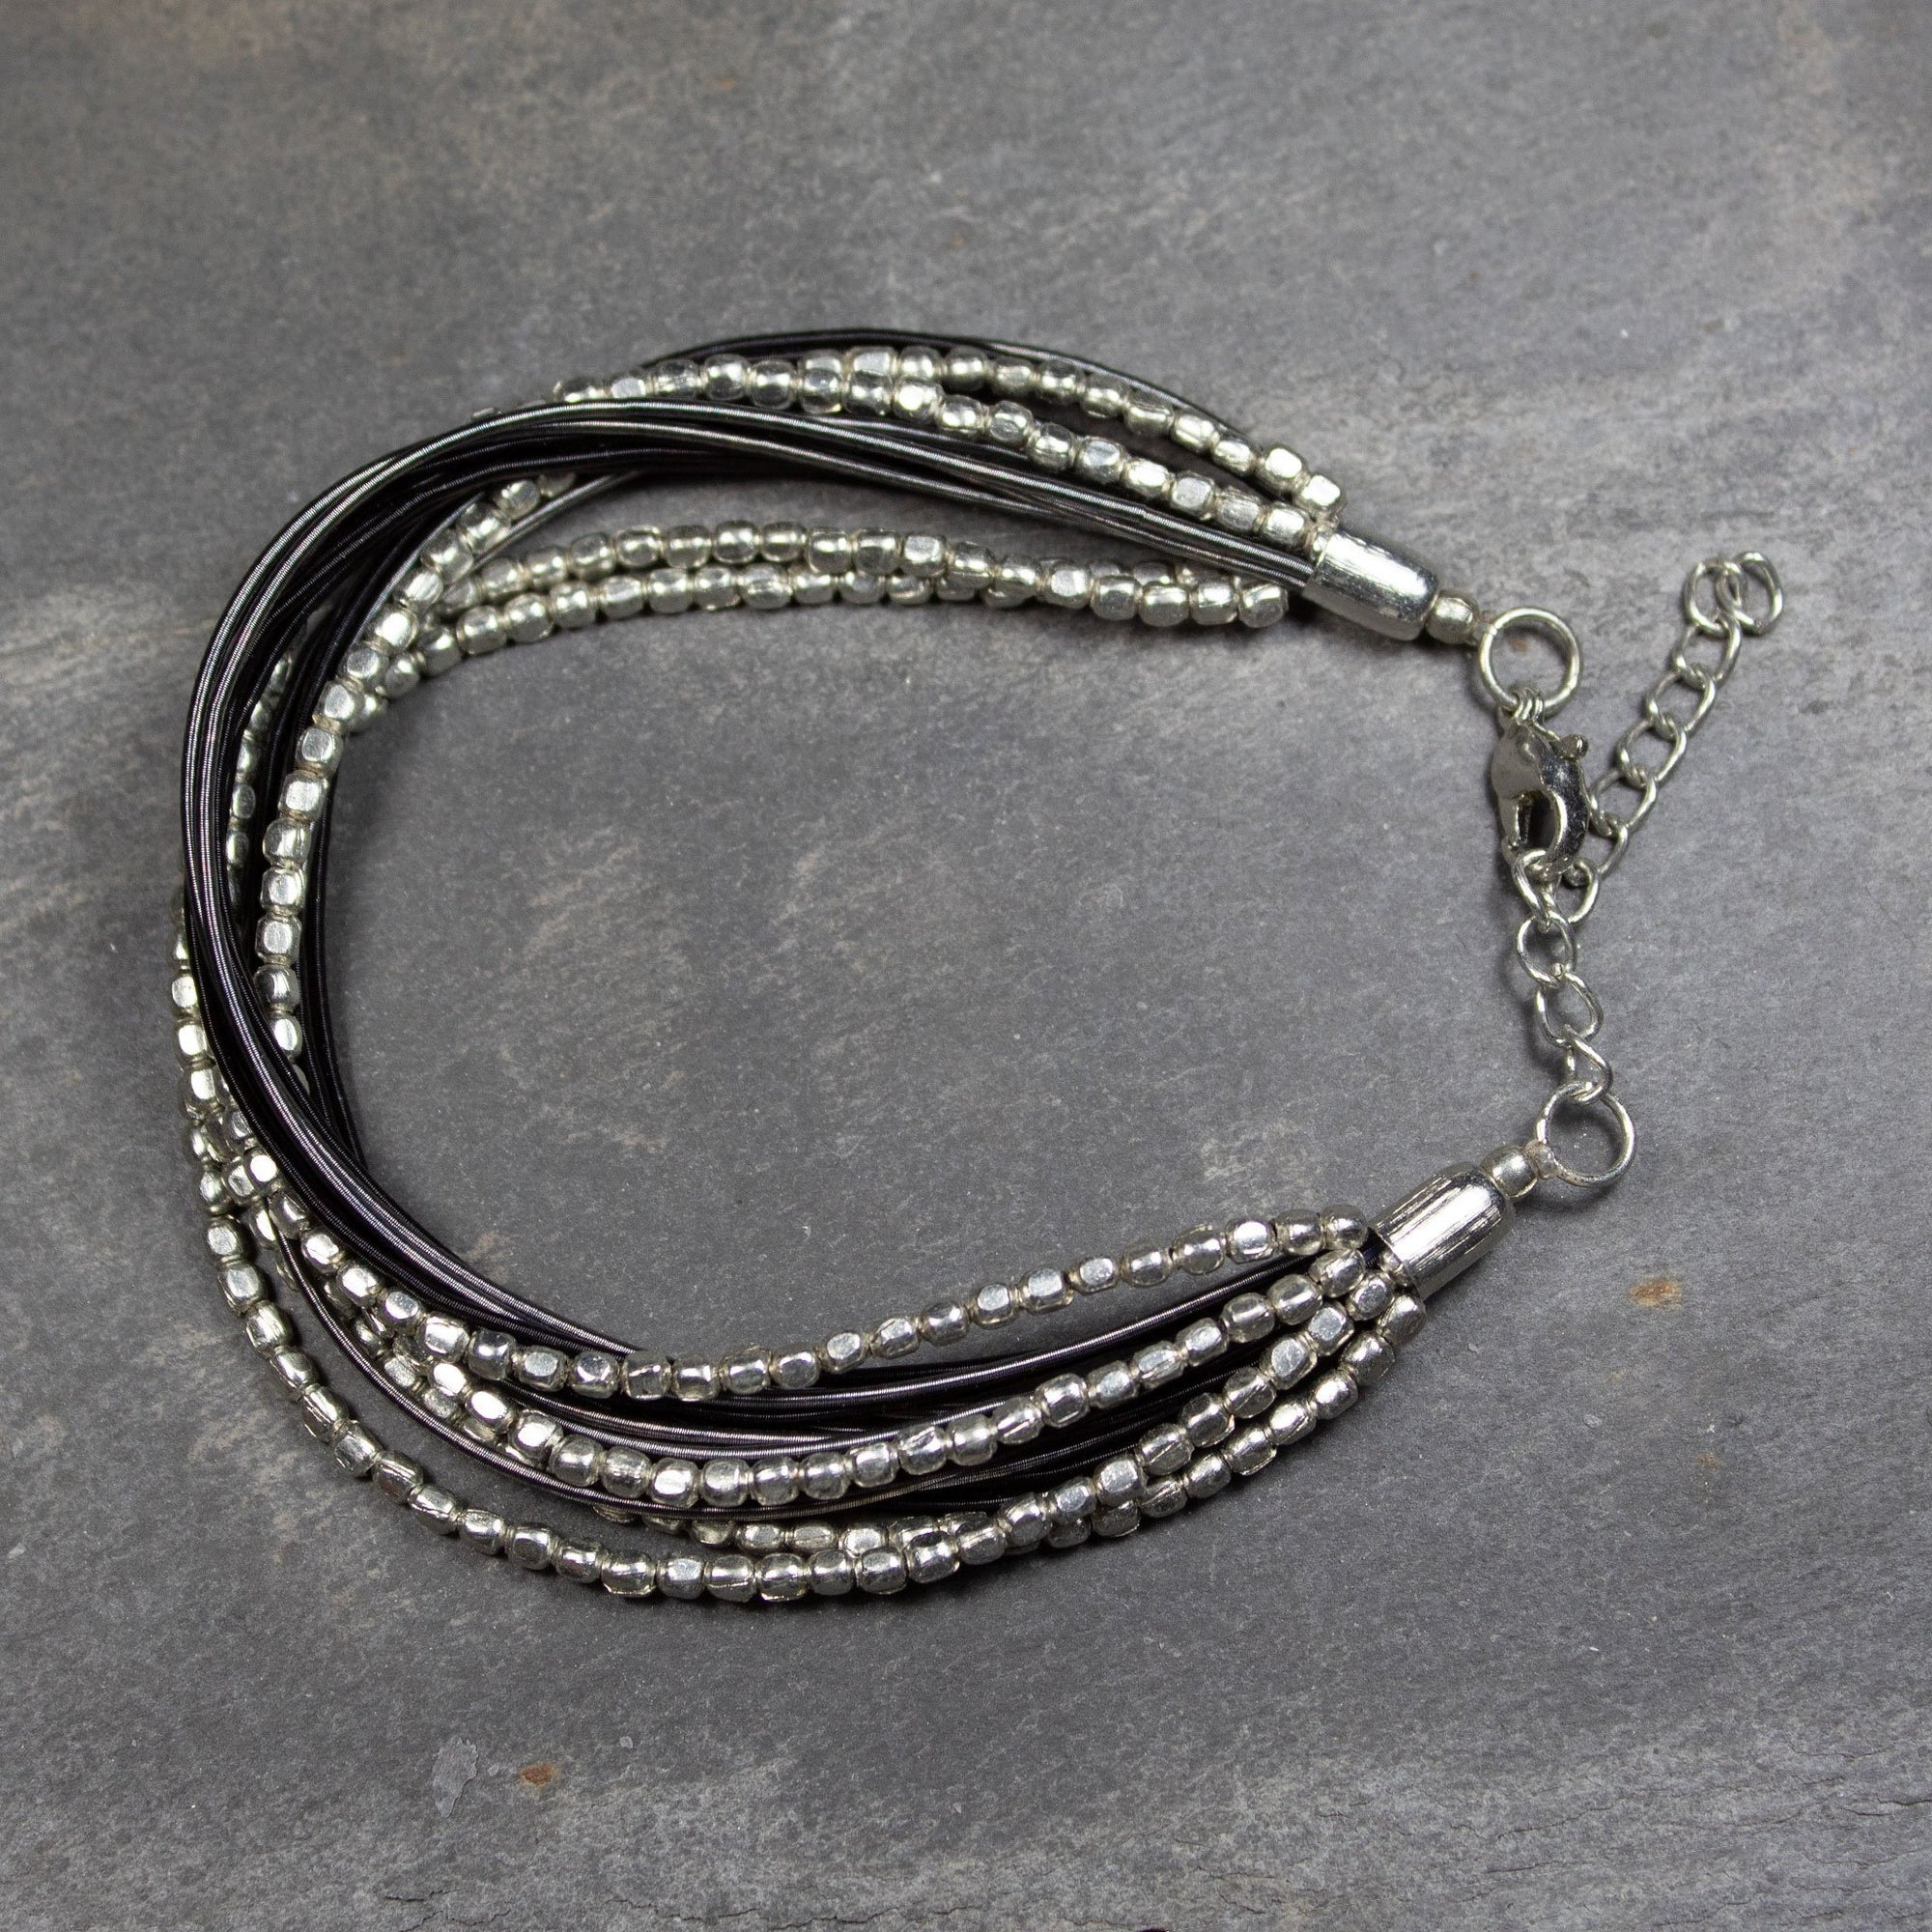 Multi Strand Black Wire & Metal Bracelet | Bracelet - The Naughty Shrew